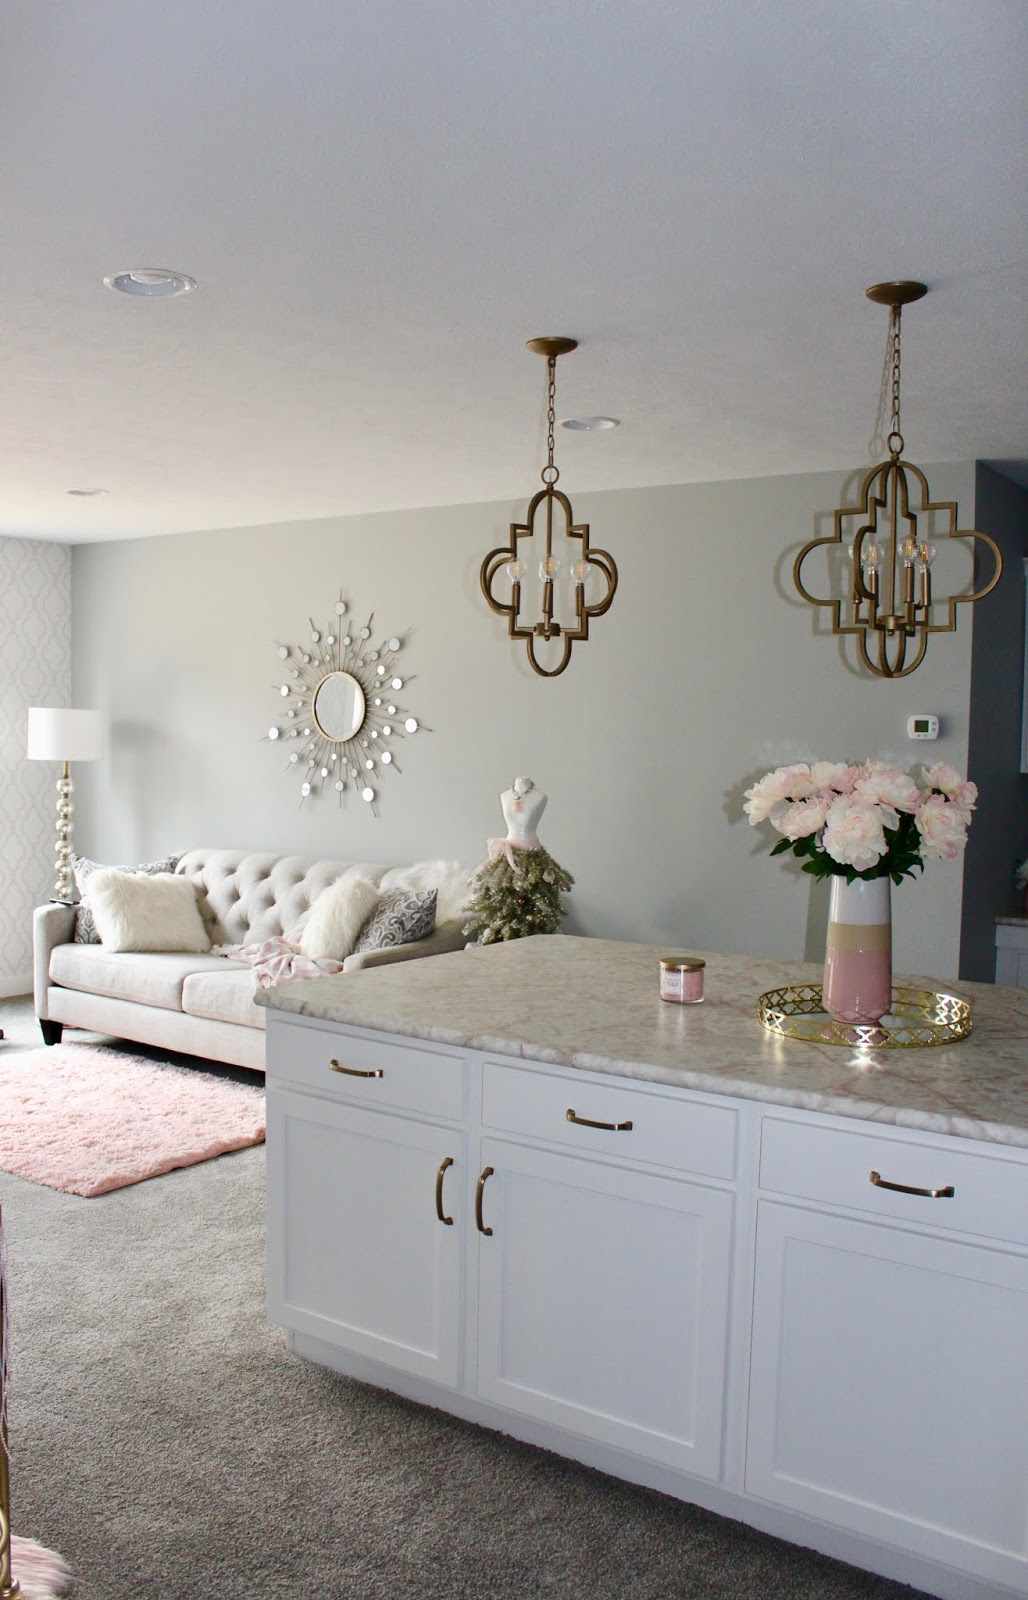 Every girl needs a little glam and Andrea at Living on Cloud Nine has included some rooms just for her!